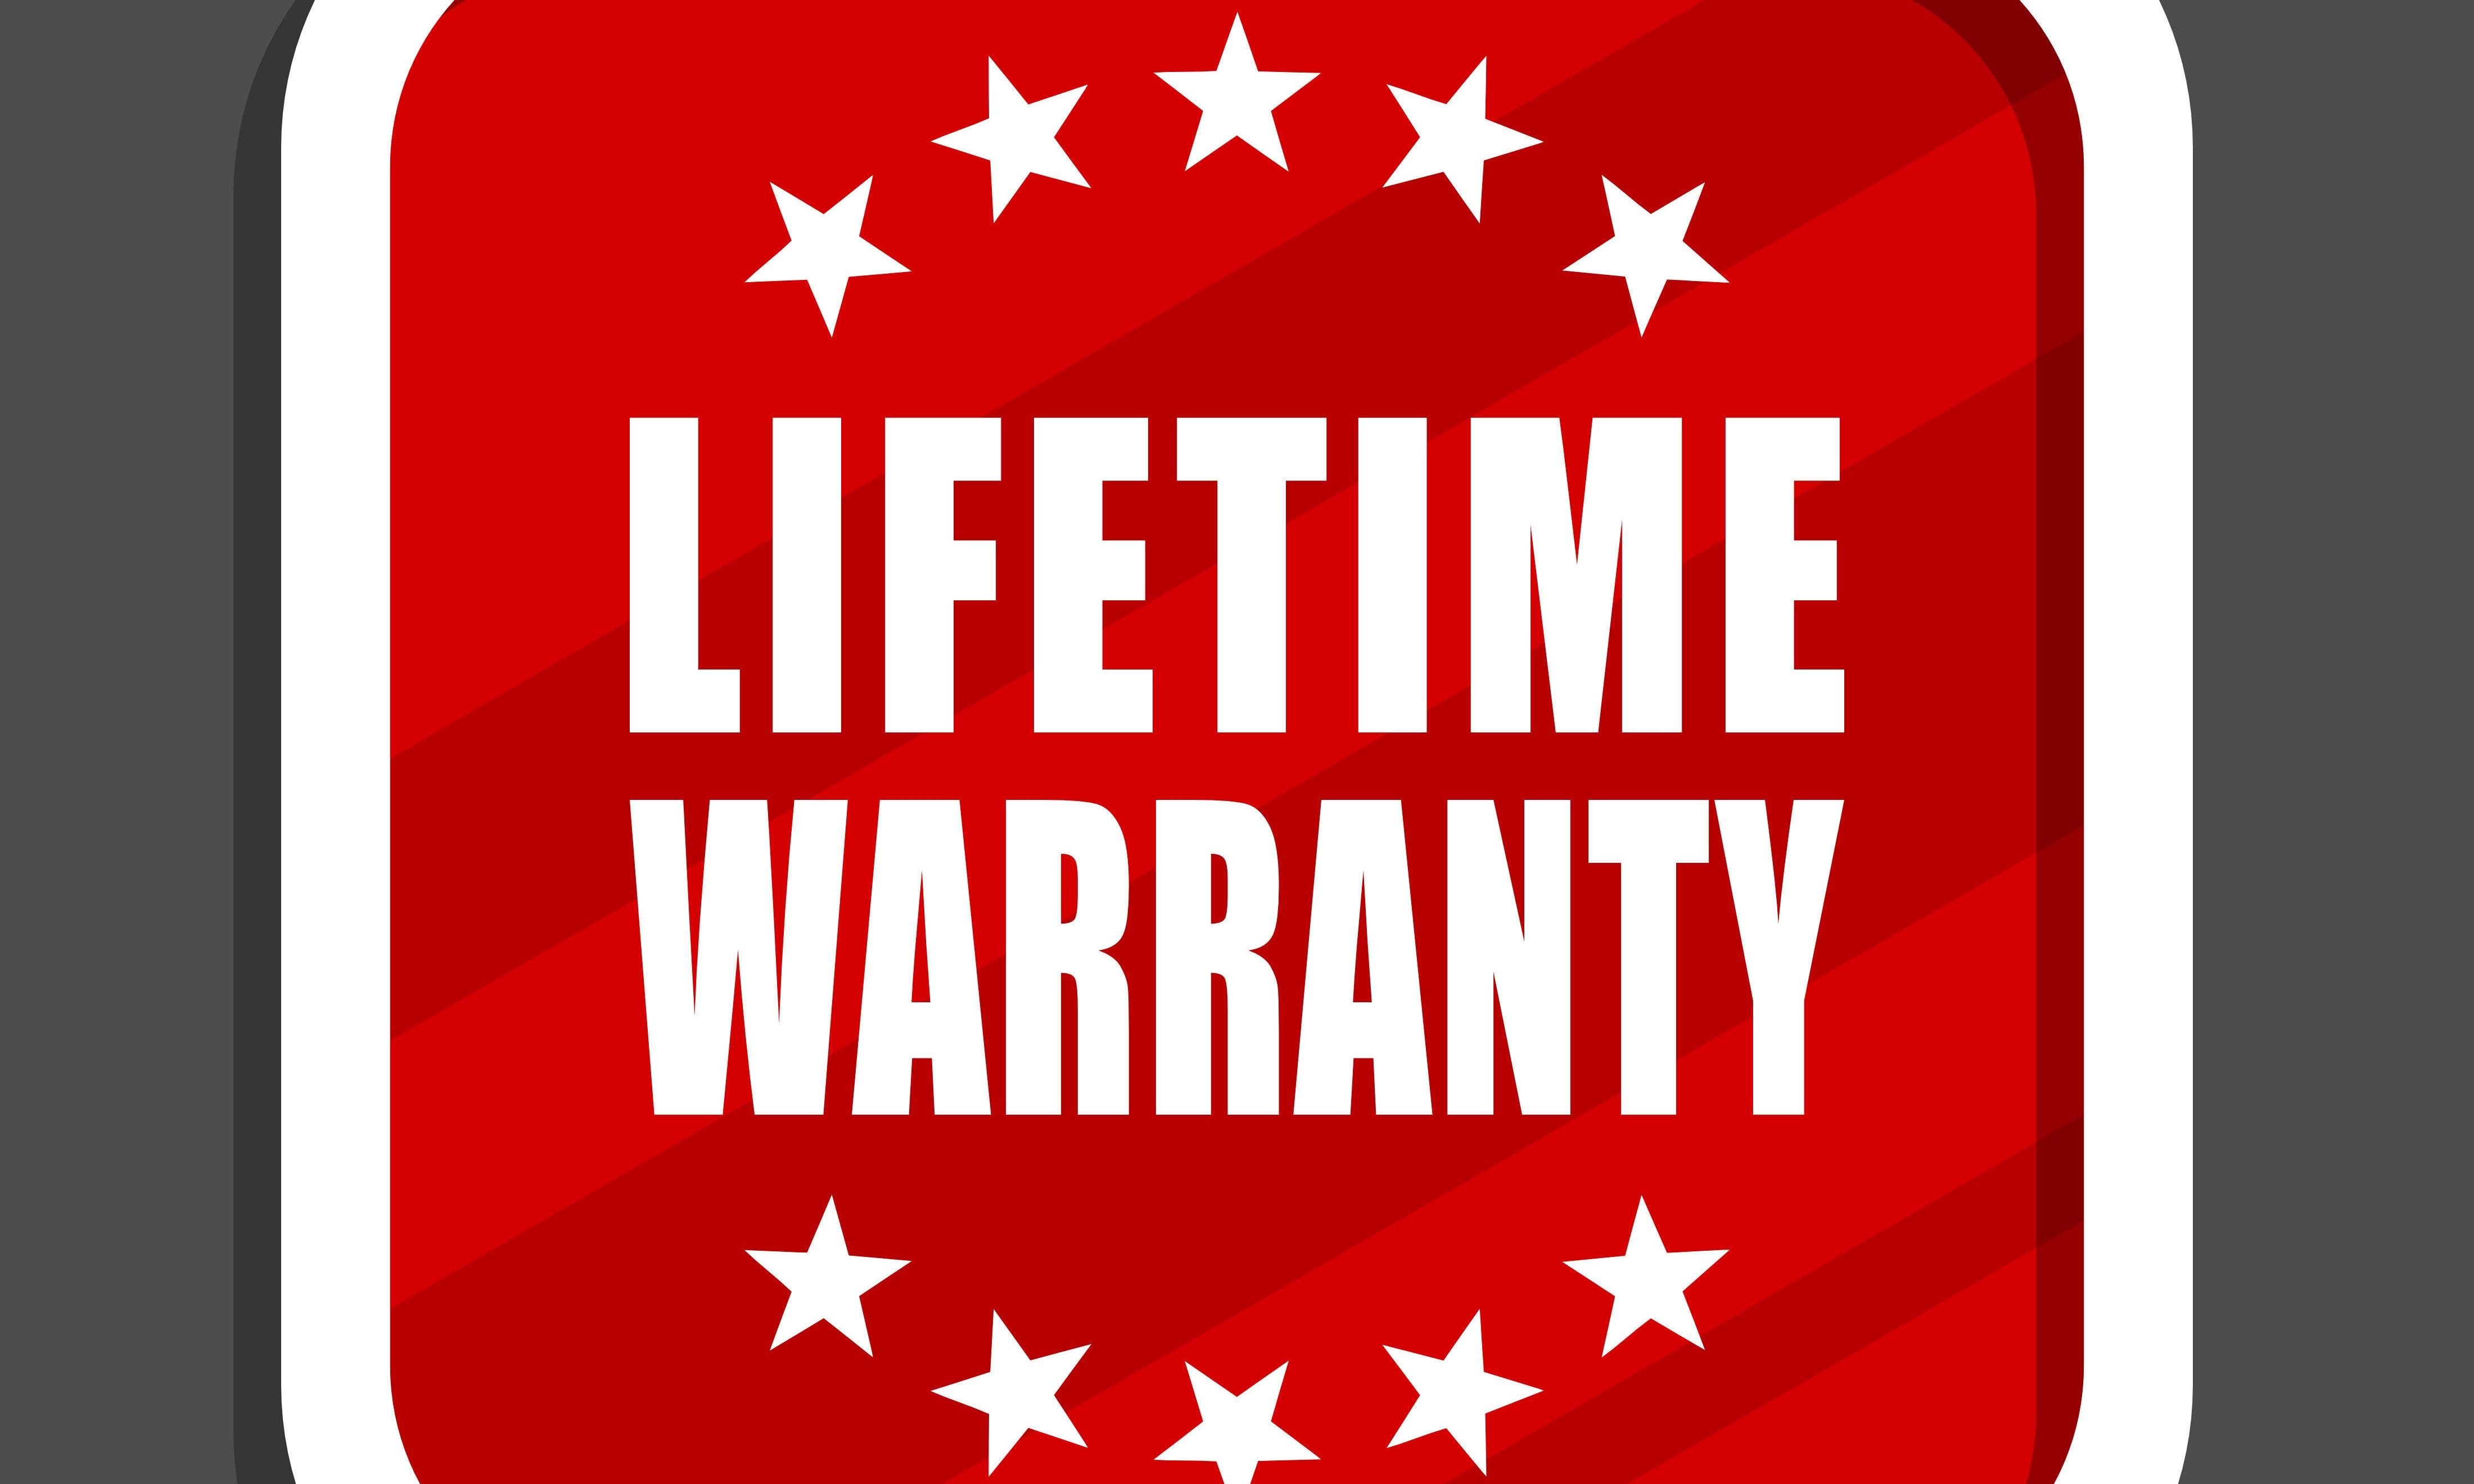 Lifetime guarantee. So what does that mean, exactly?